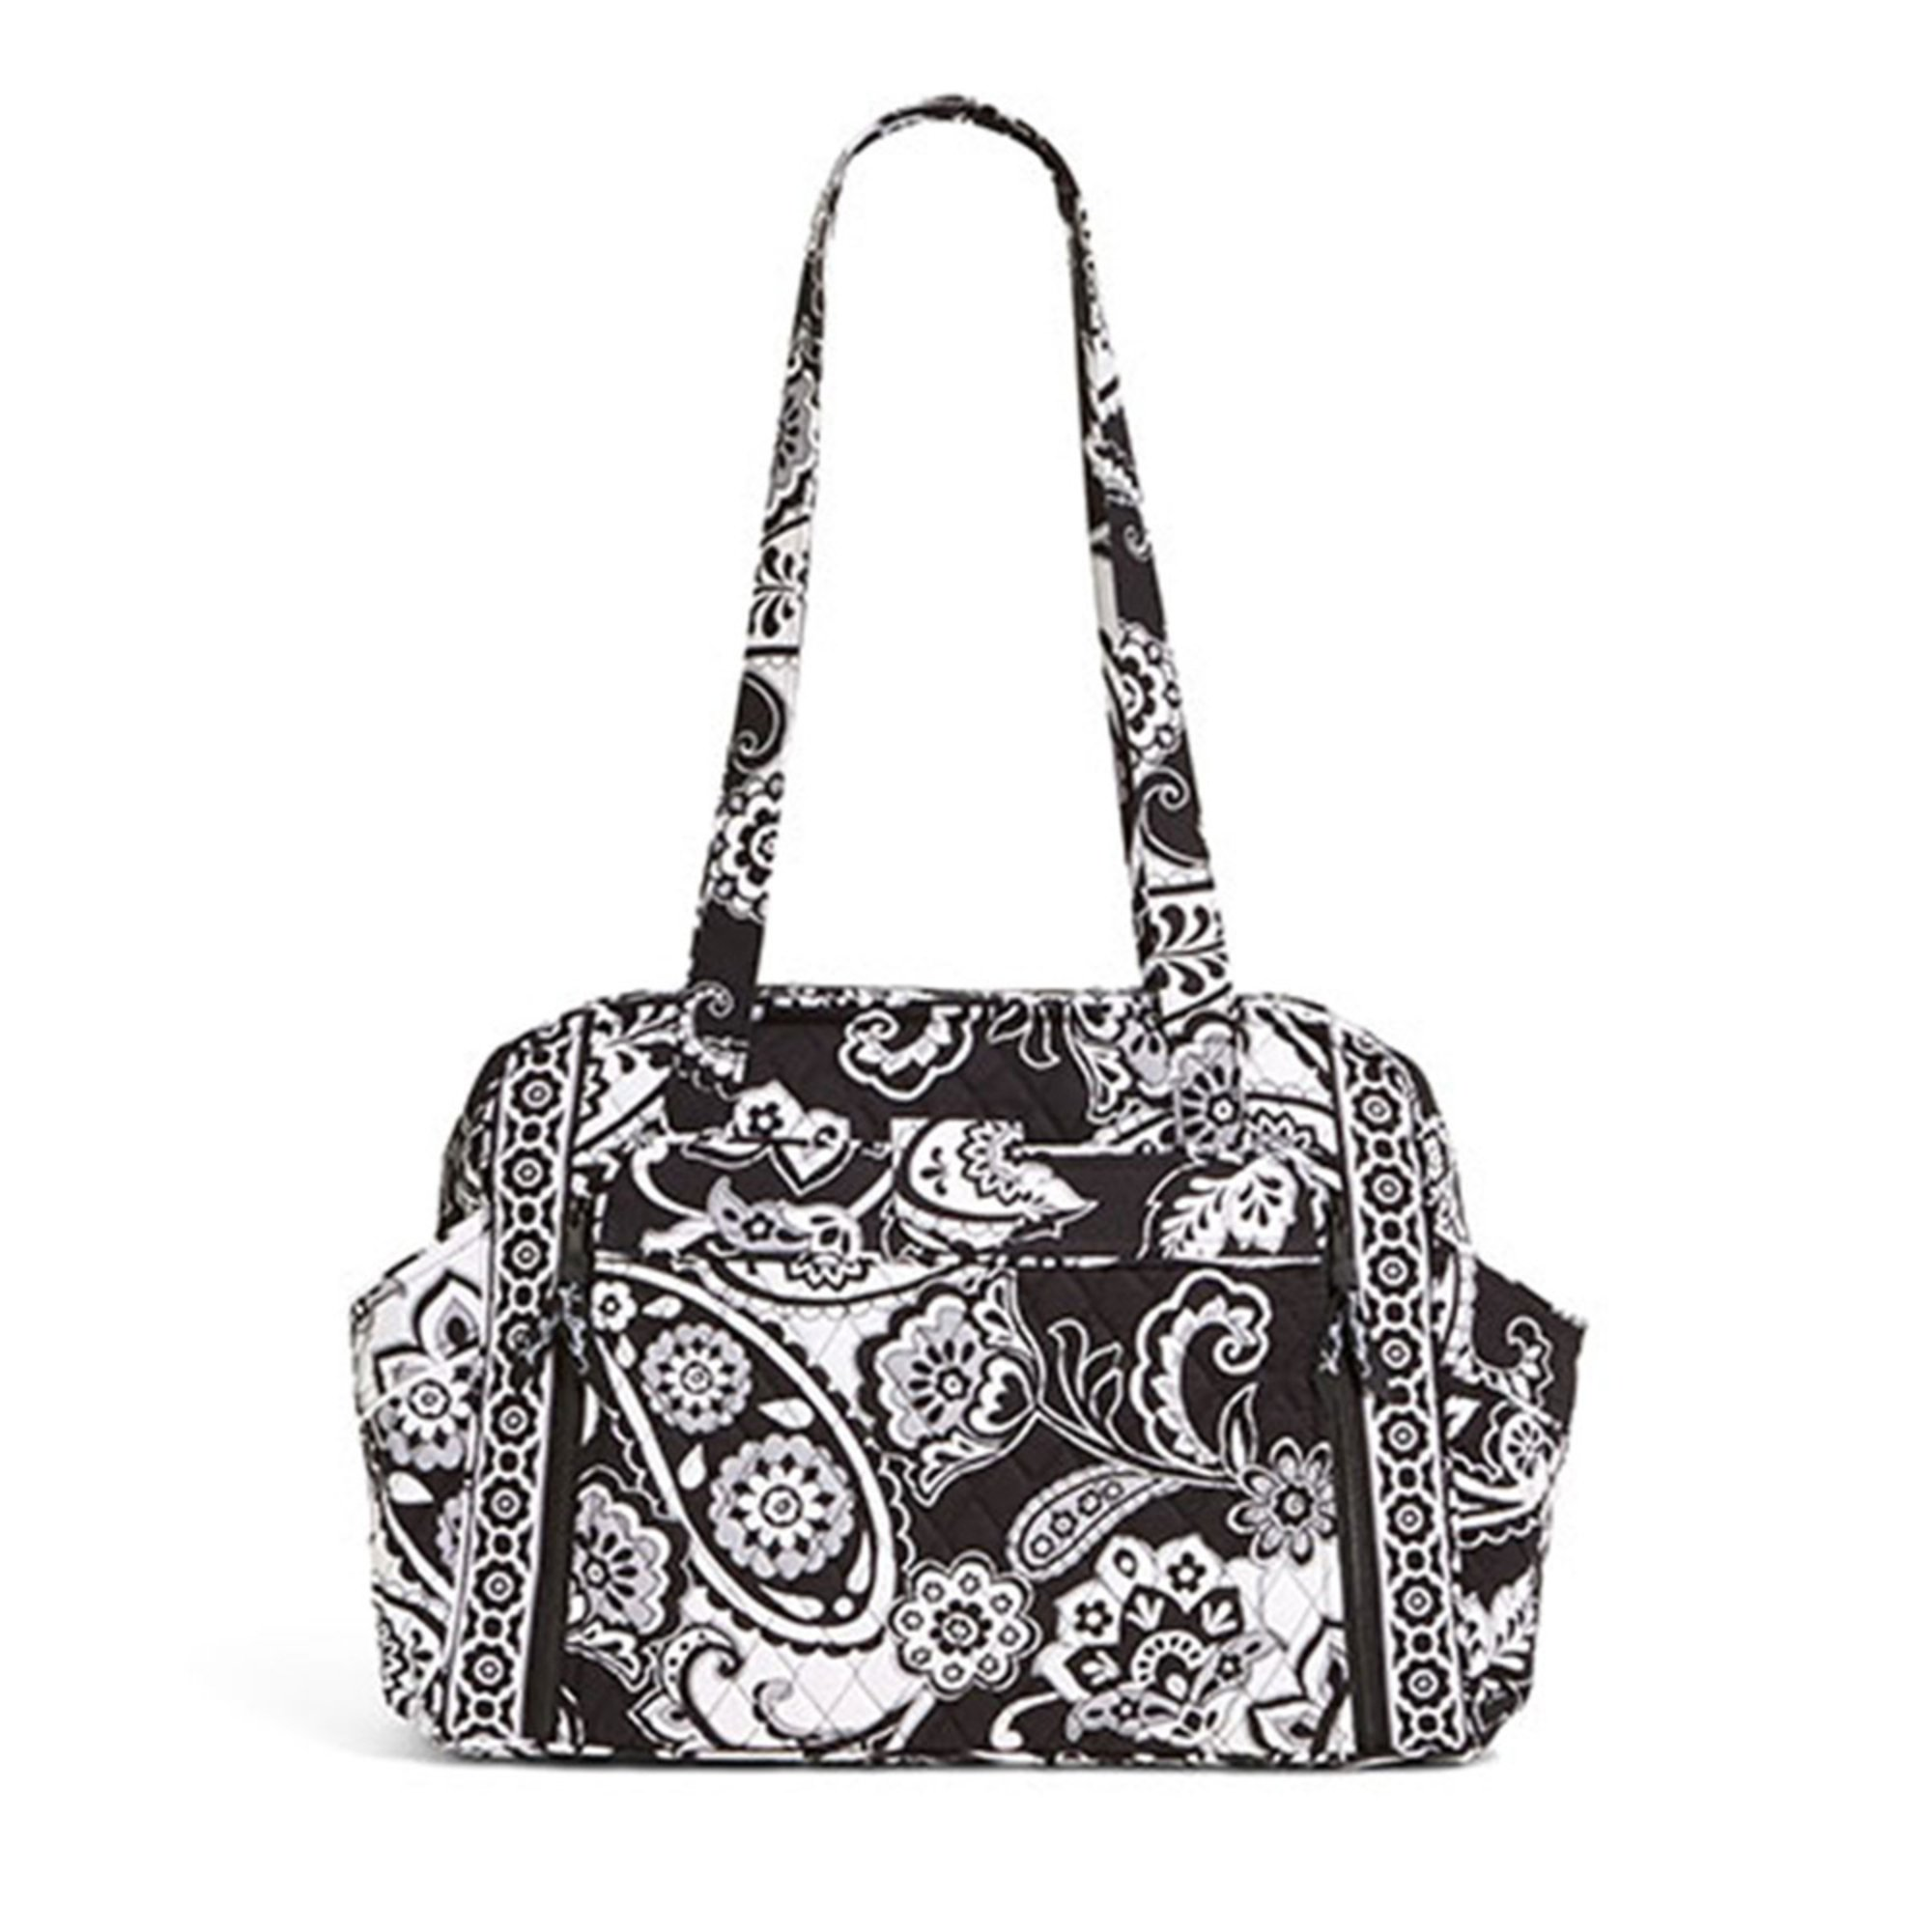 vera bradley make a change baby bag midnight paisley totes kids shop your navy exchange. Black Bedroom Furniture Sets. Home Design Ideas